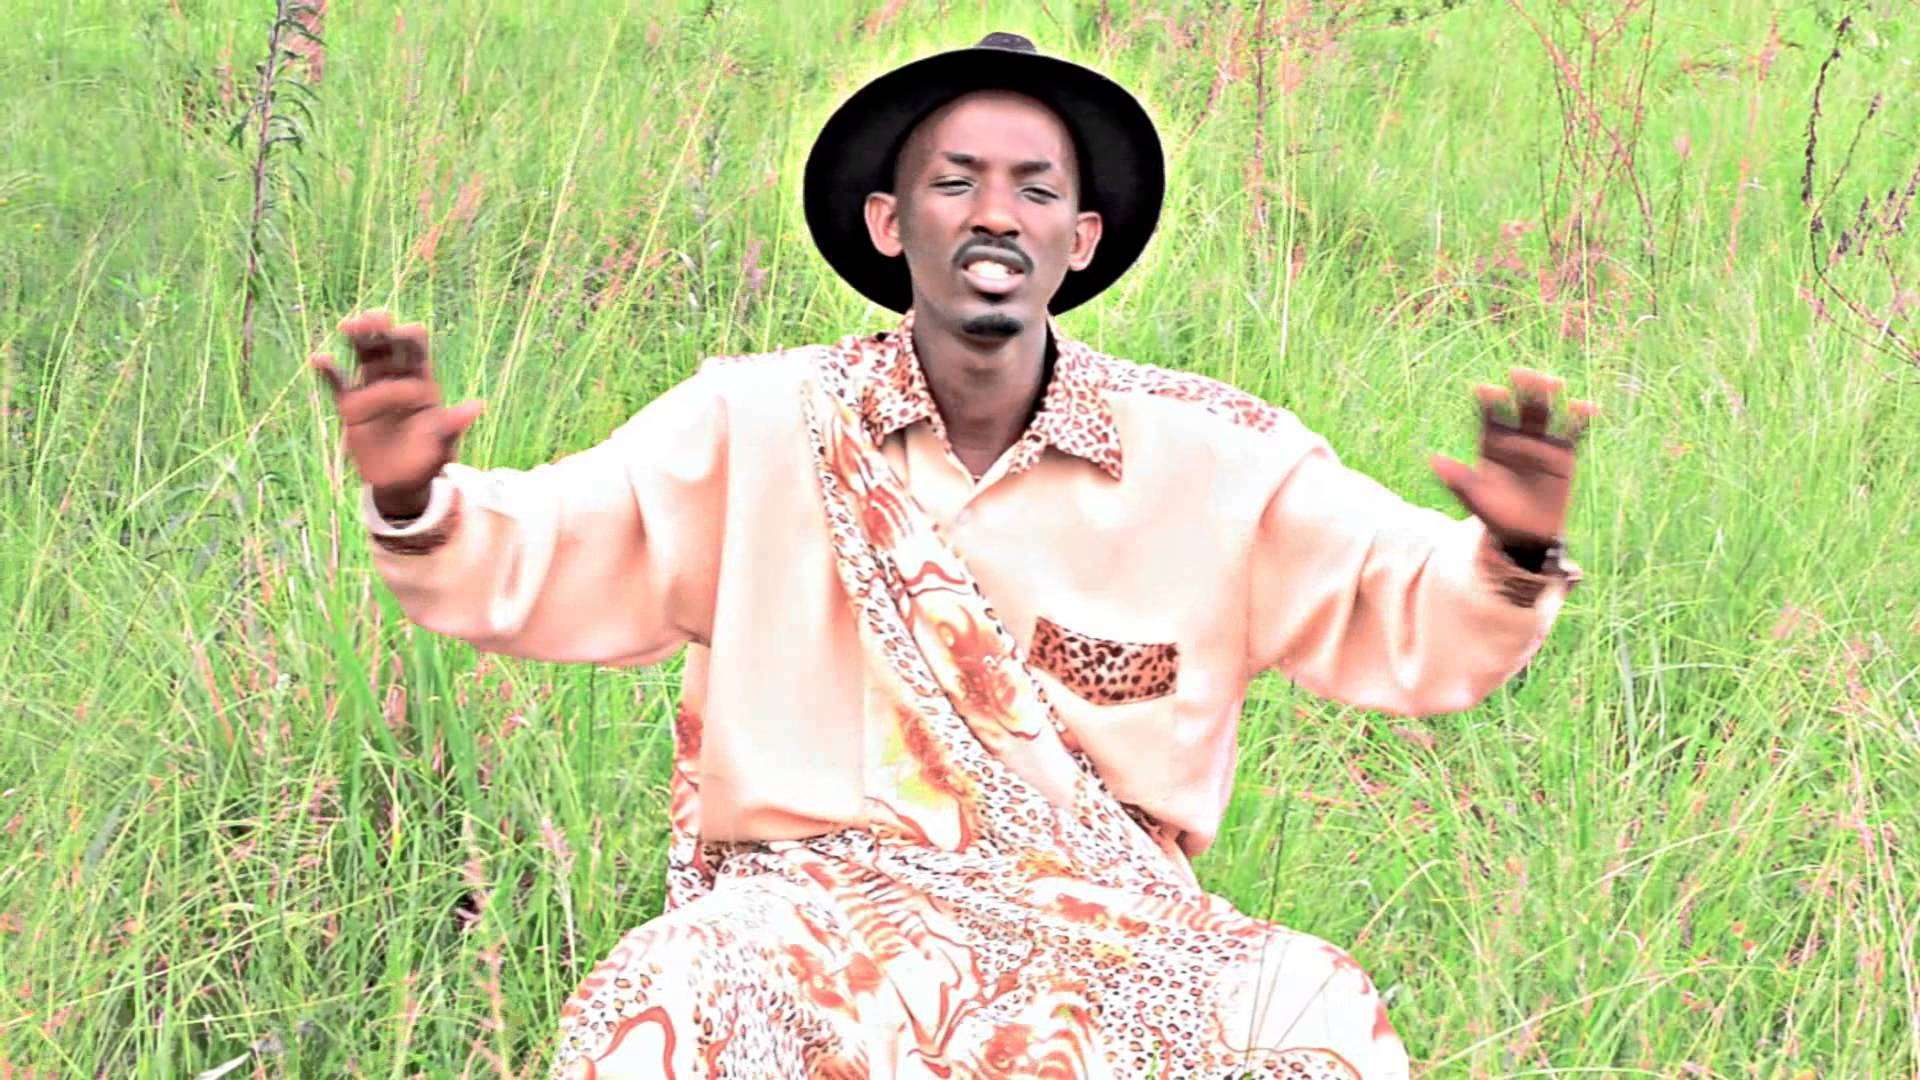 Official video Ishimwe by Ndabarasa John